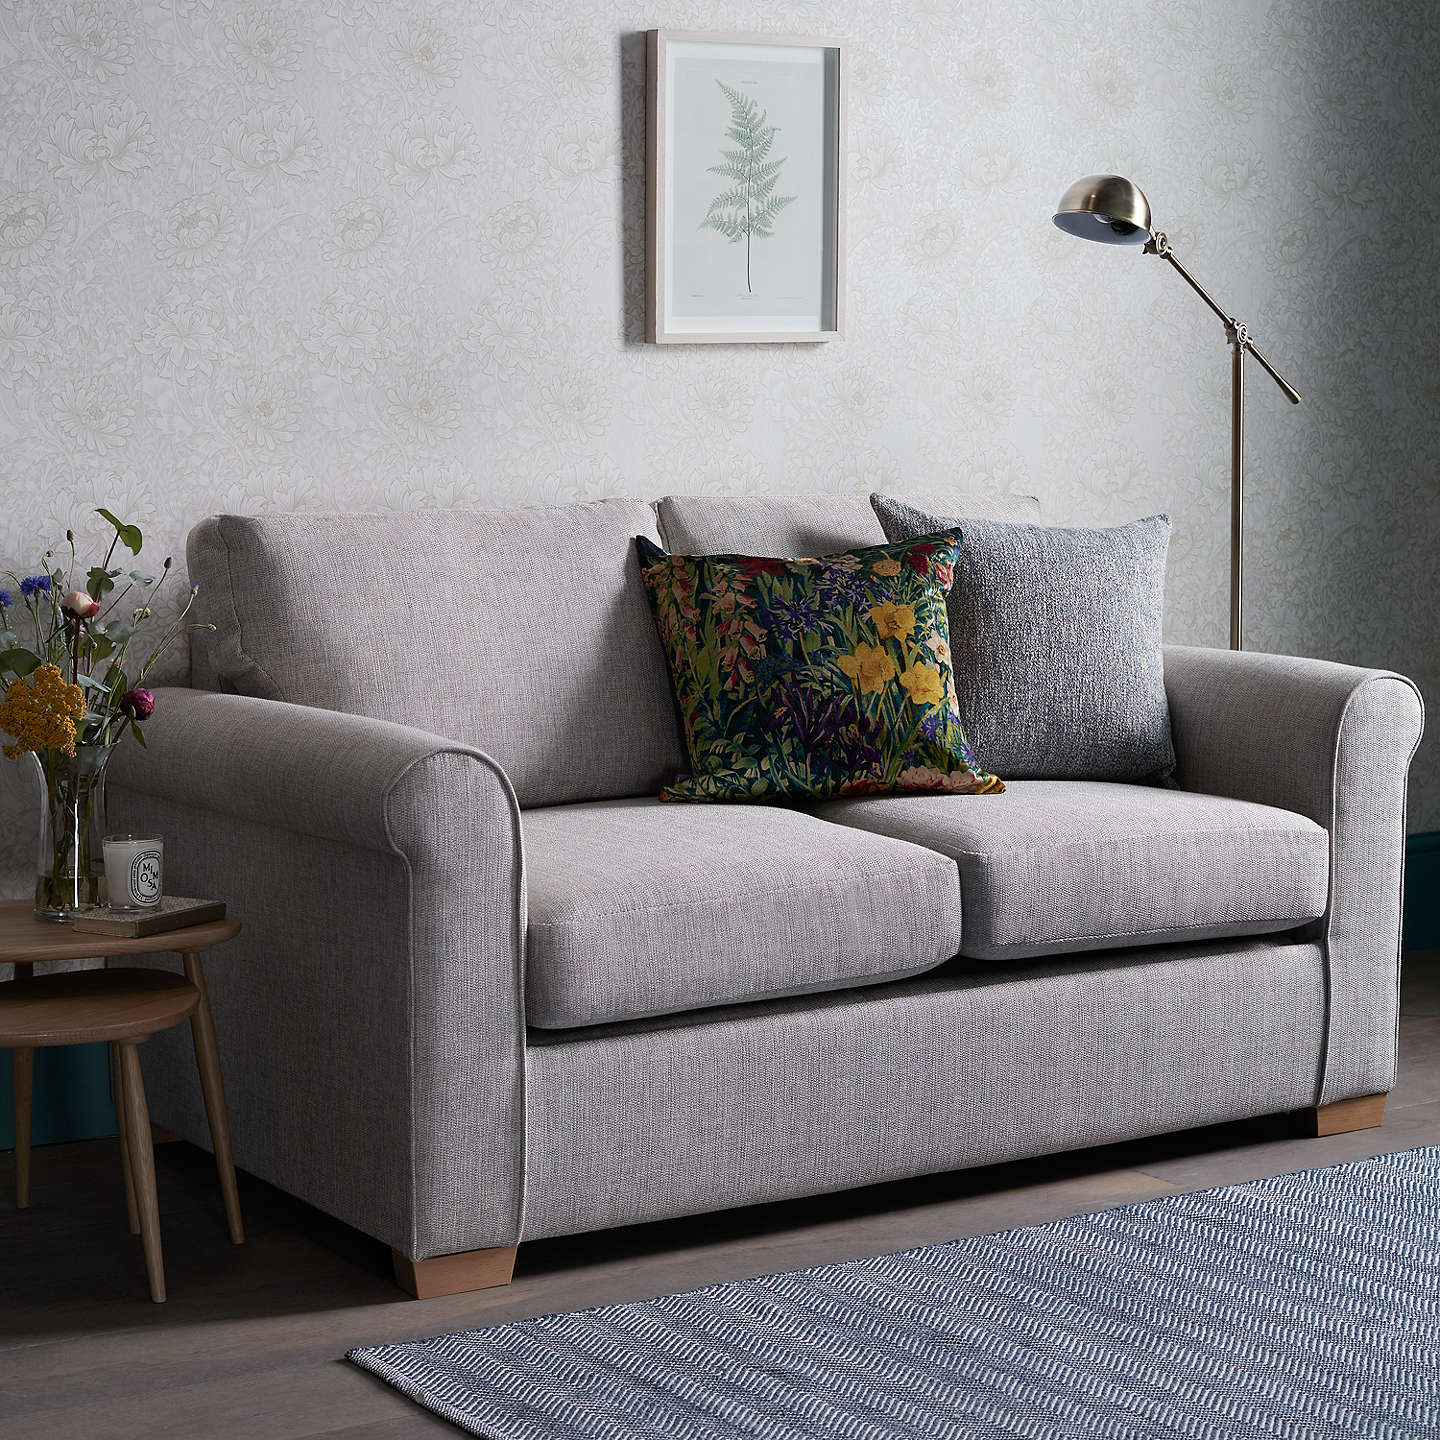 ... BuyJohn Lewis Malone 2 Seater Small Sofa Bed With Pocket Sprung  Mattress, Stanton French Grey